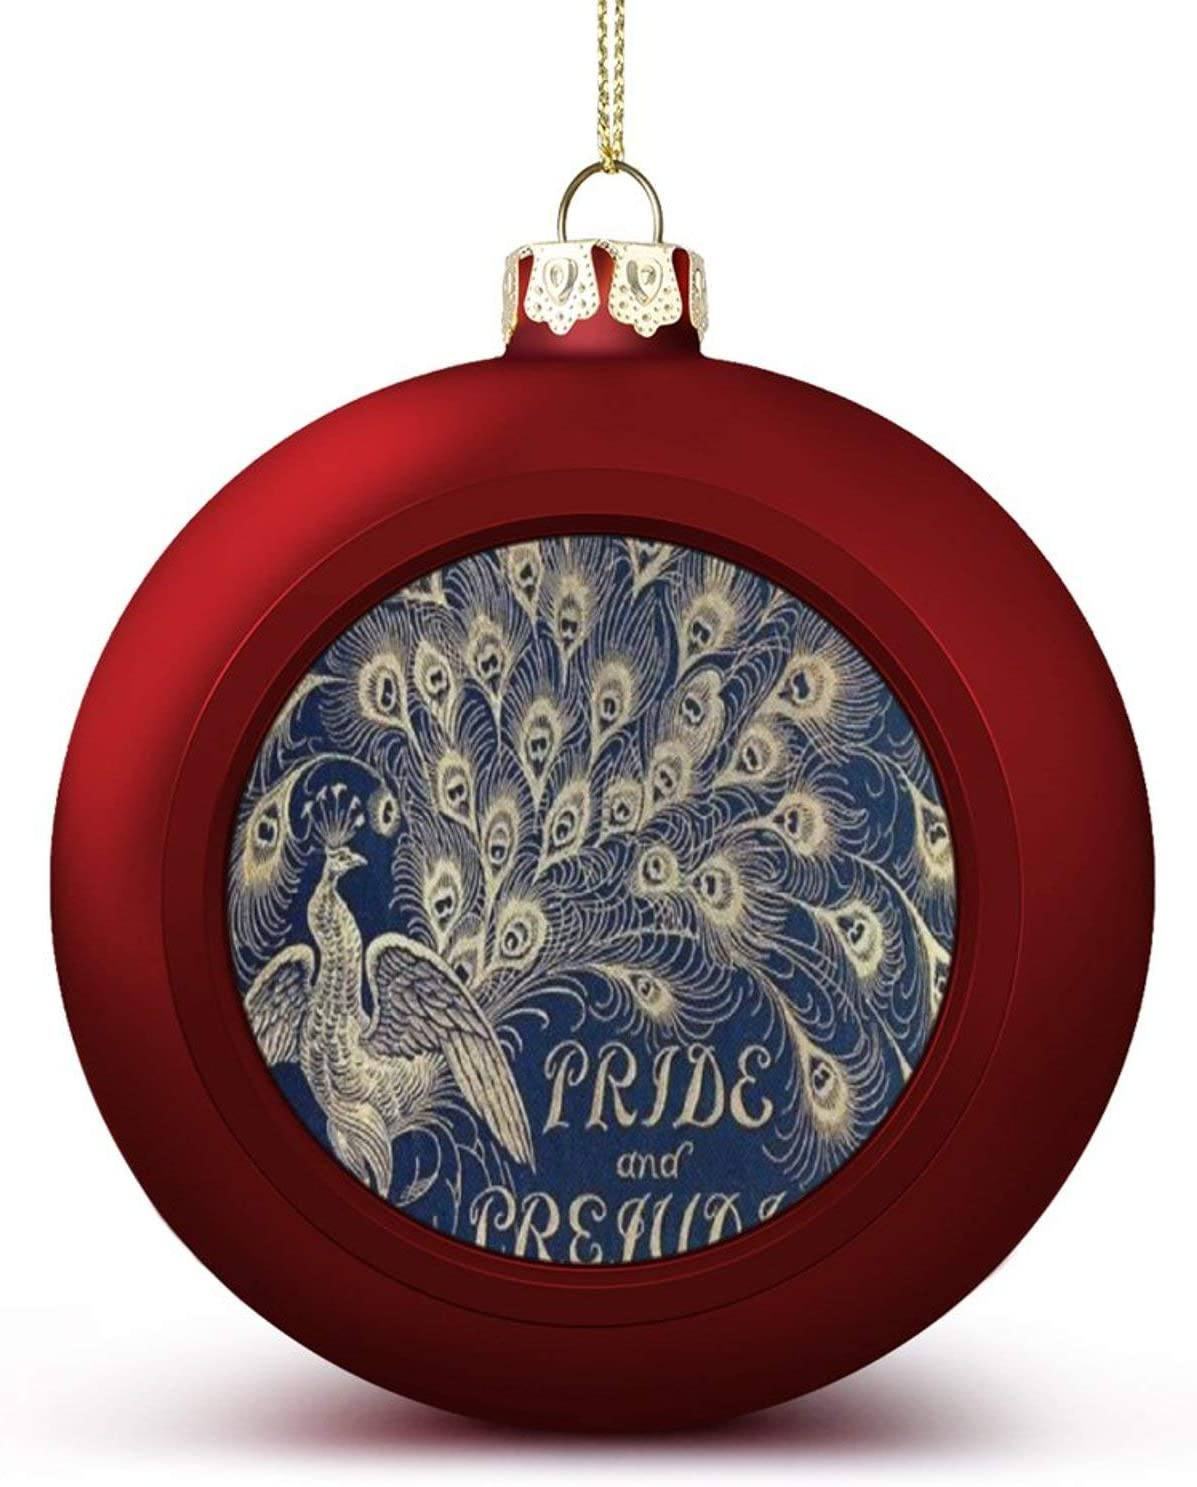 JANNINSE Pemberley Pride and Prejudice Peacock Jane Austen Darcy Christmas Ball Ornaments Anti-Drop, Plastic Ornaments Christmas Balls, Various Holiday Party Decorations